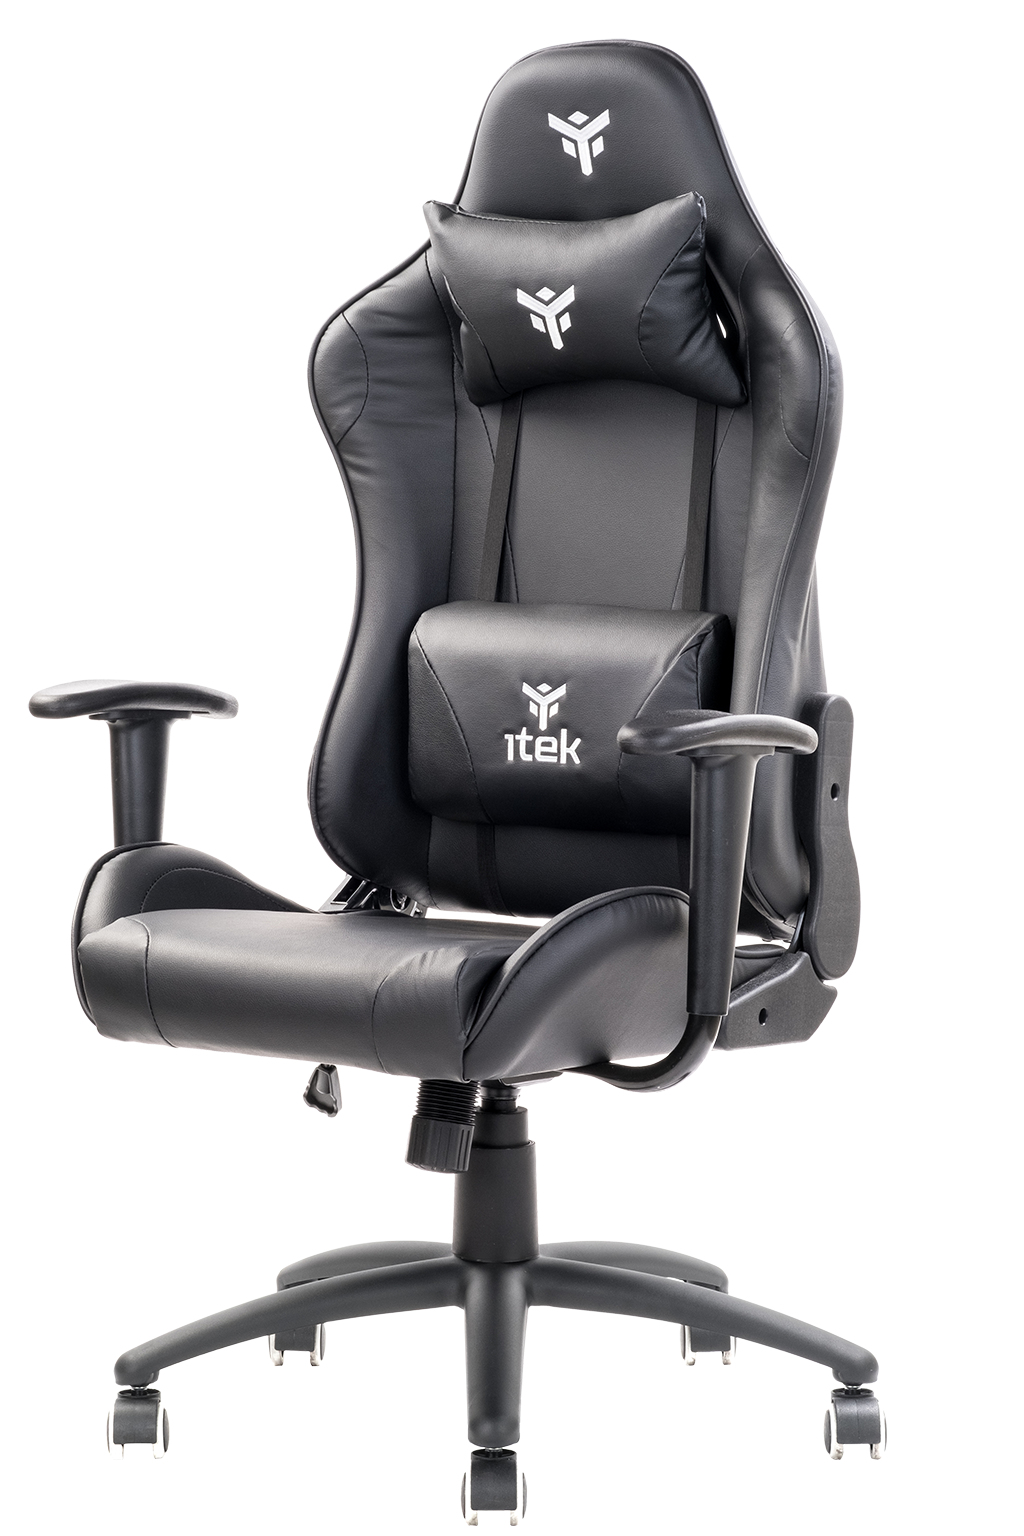 itek Gaming Chair PLAYCOM PM20 - PVC, Doppio Cuscino, Schienale Reclinabile, Nero Nero